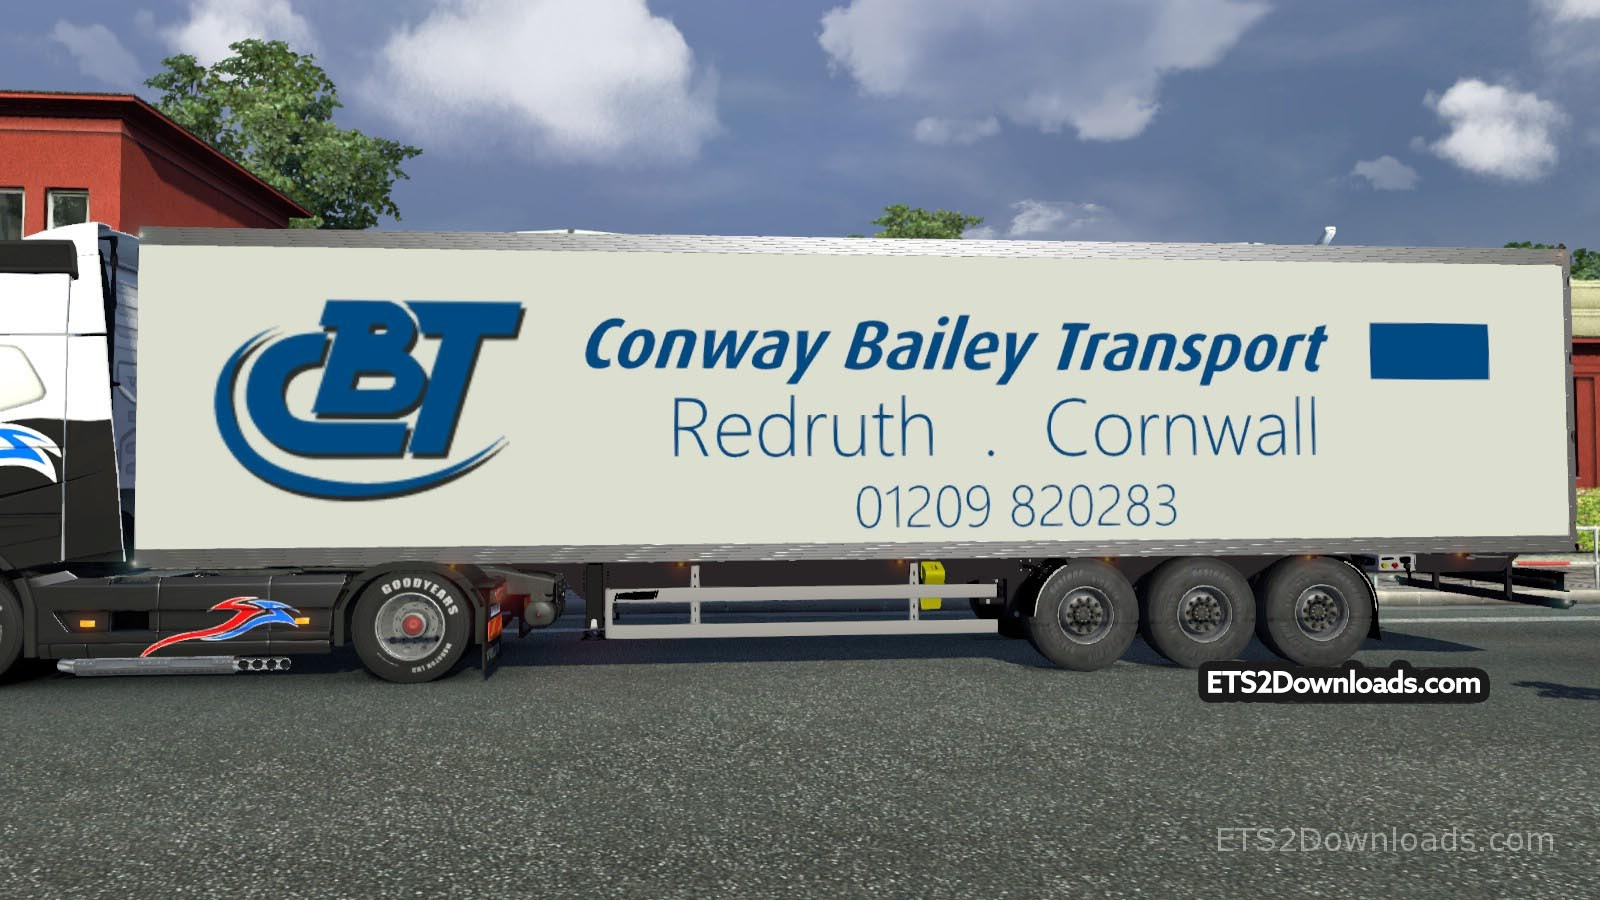 conway-bailey-transport-trailer-2